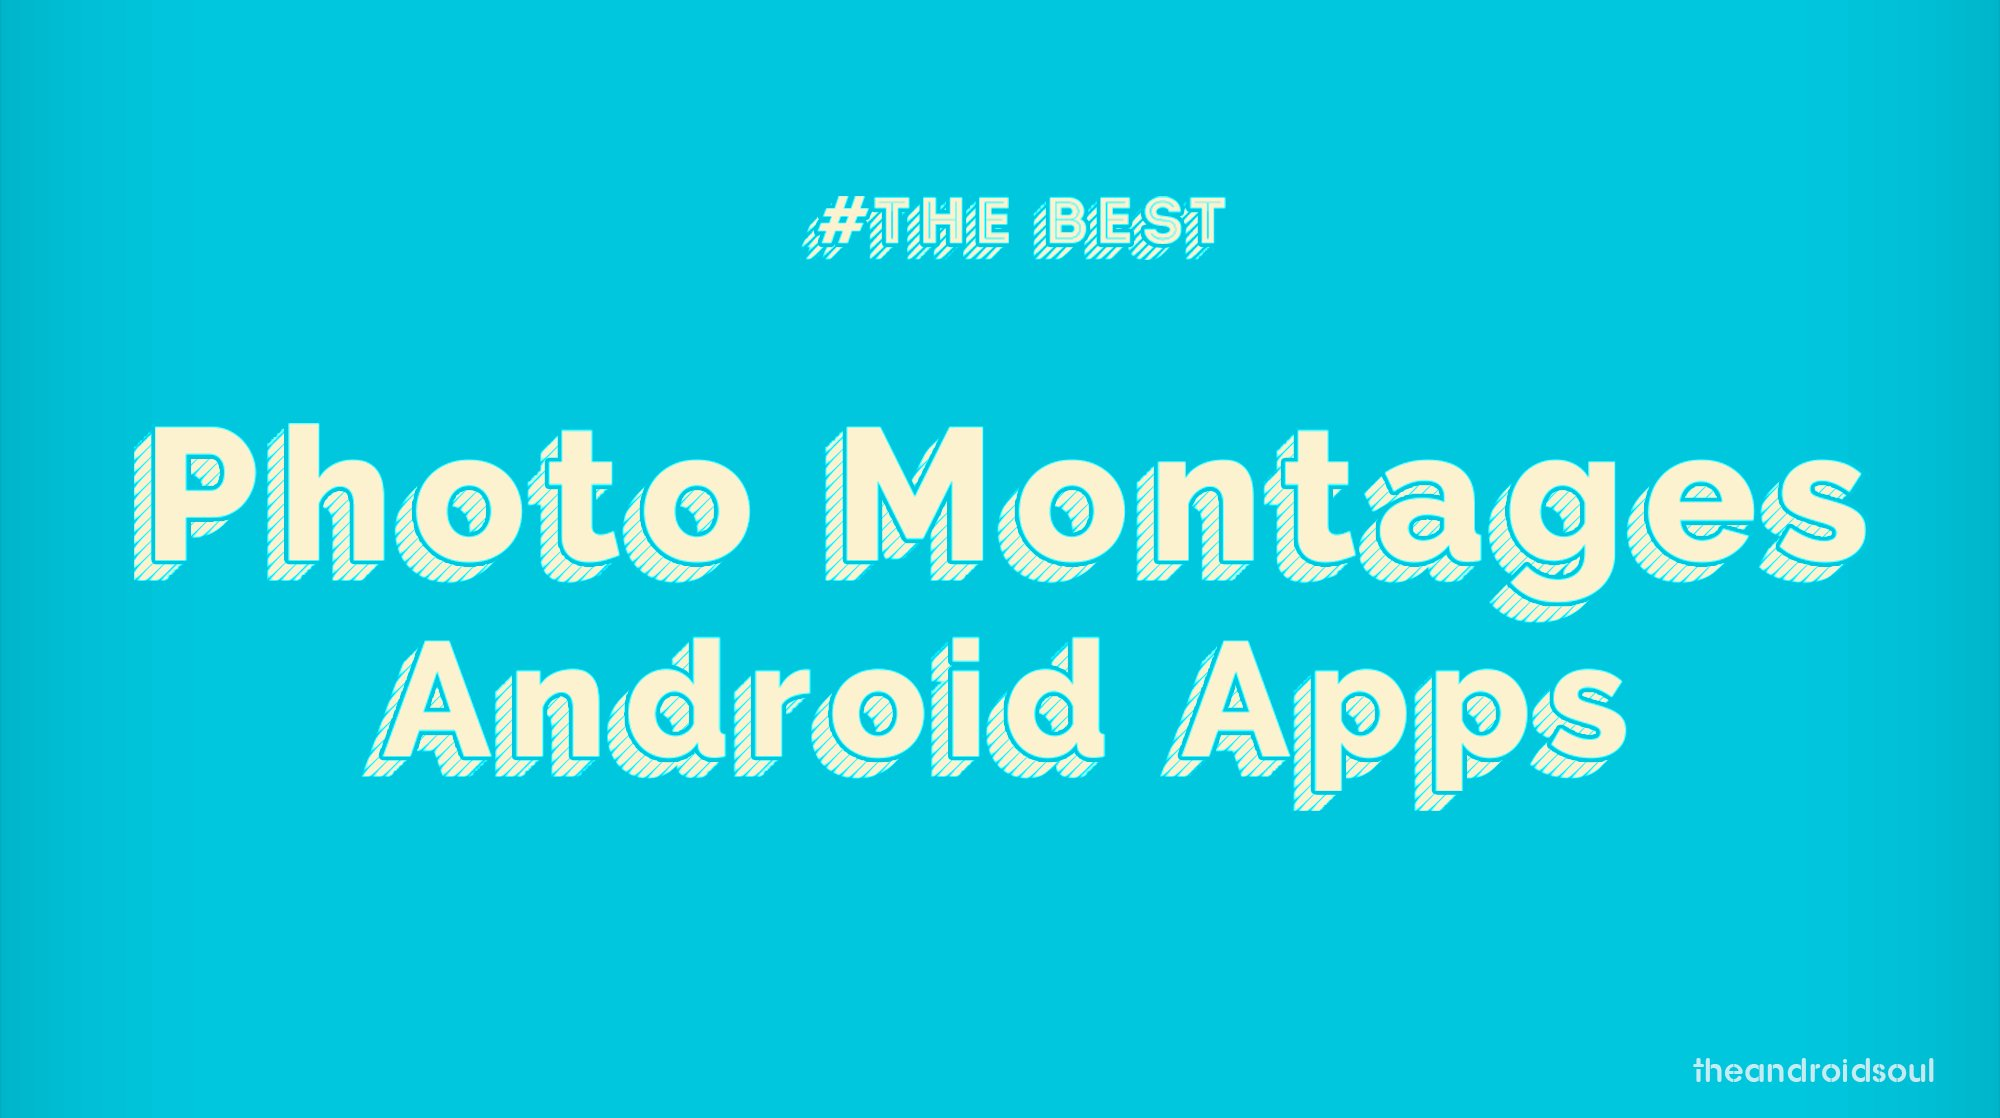 Best Photo Montages Android apps